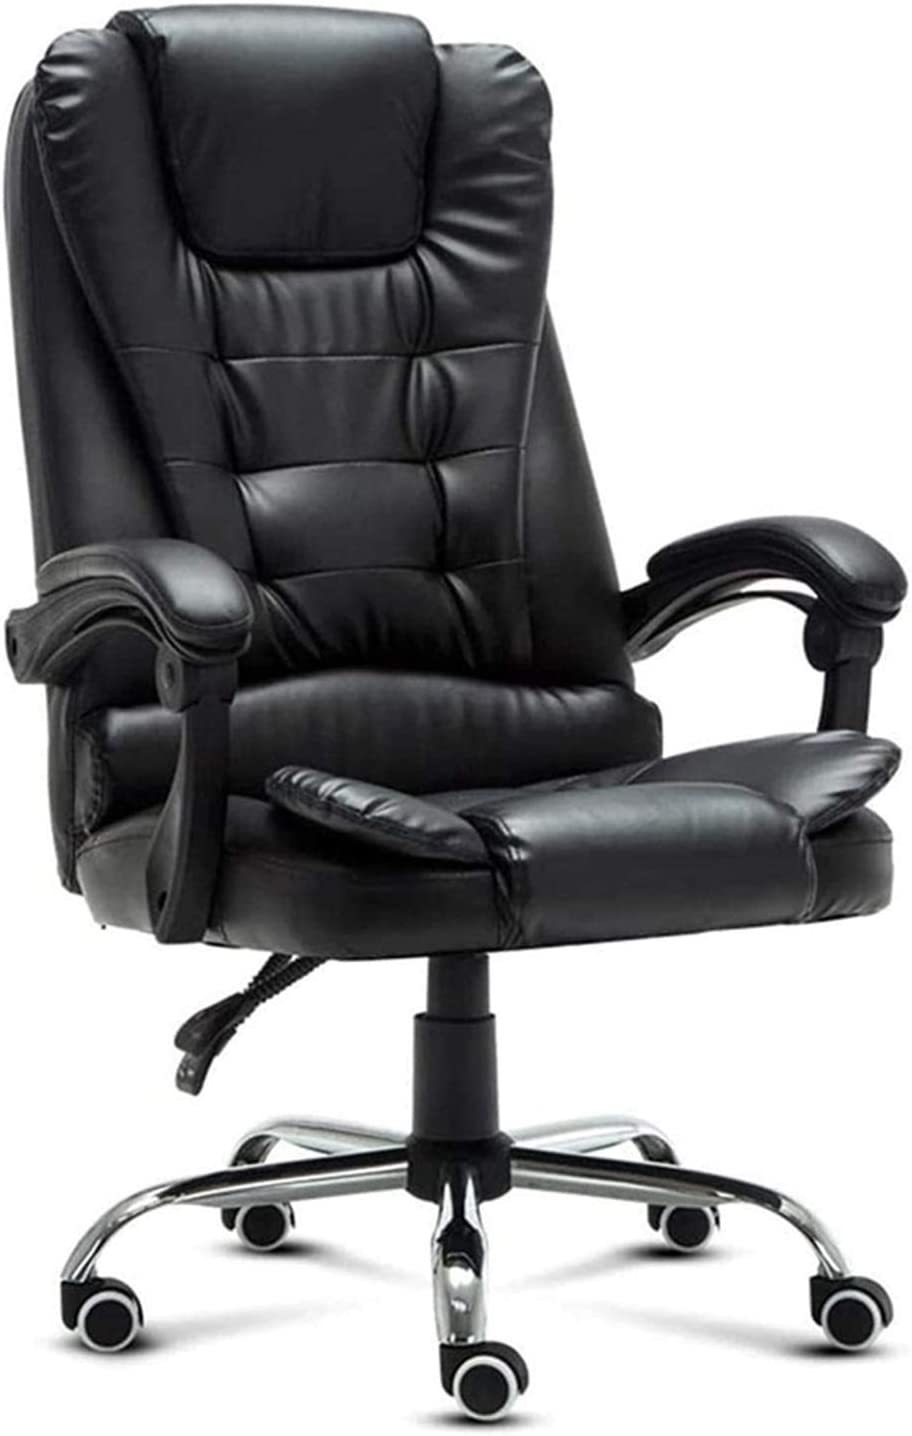 LJJSMG High Back Office Popular shop Free shipping on posting reviews is the lowest price challenge - Executive Chair Ergonomic